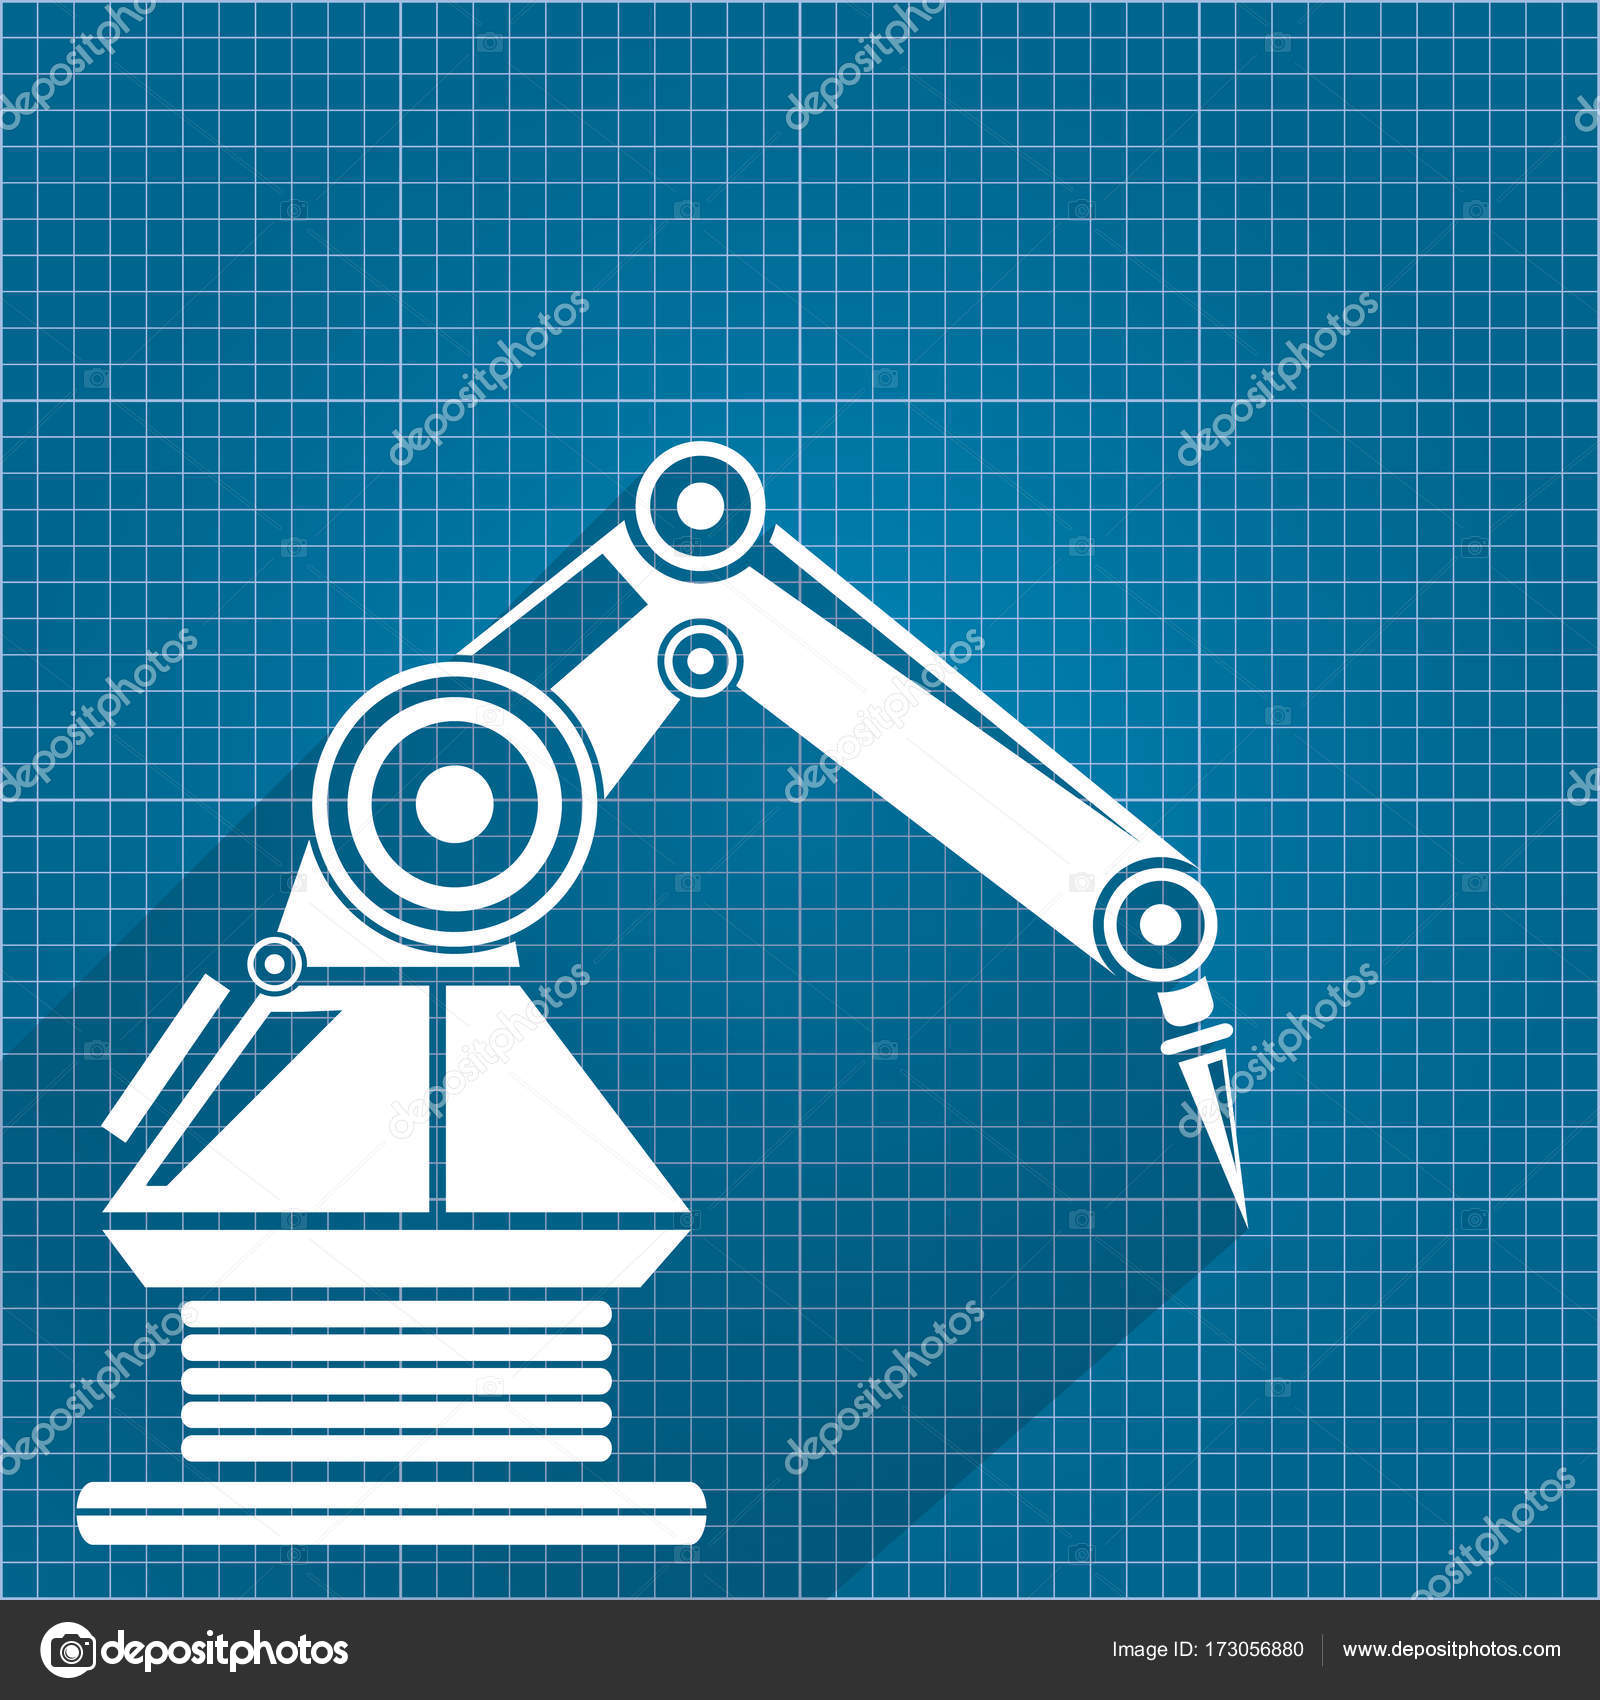 Vector robotic arm symbol on blueprint paper background robot hand vector robotic arm symbol on blueprint paper background robot hand technology background design template vector by zm1ter find similar images malvernweather Gallery